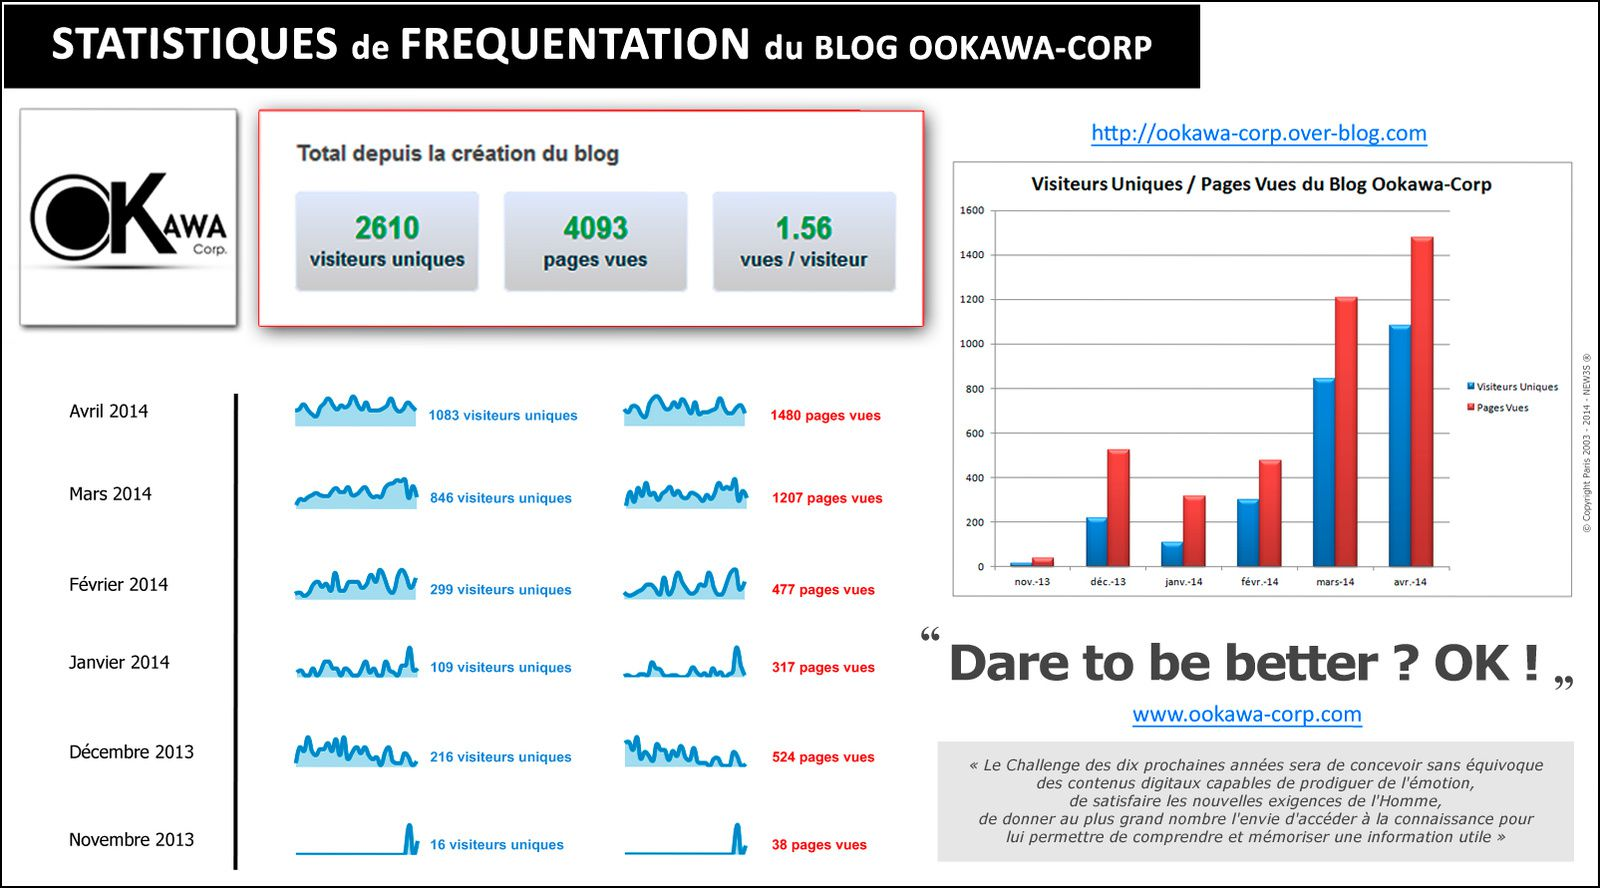 Stats Ookawa-Corp : Un GRAND Merci à VOUS TOUS ! Dare to be better ? OK ! http://ookawa-corp.over-blog.com